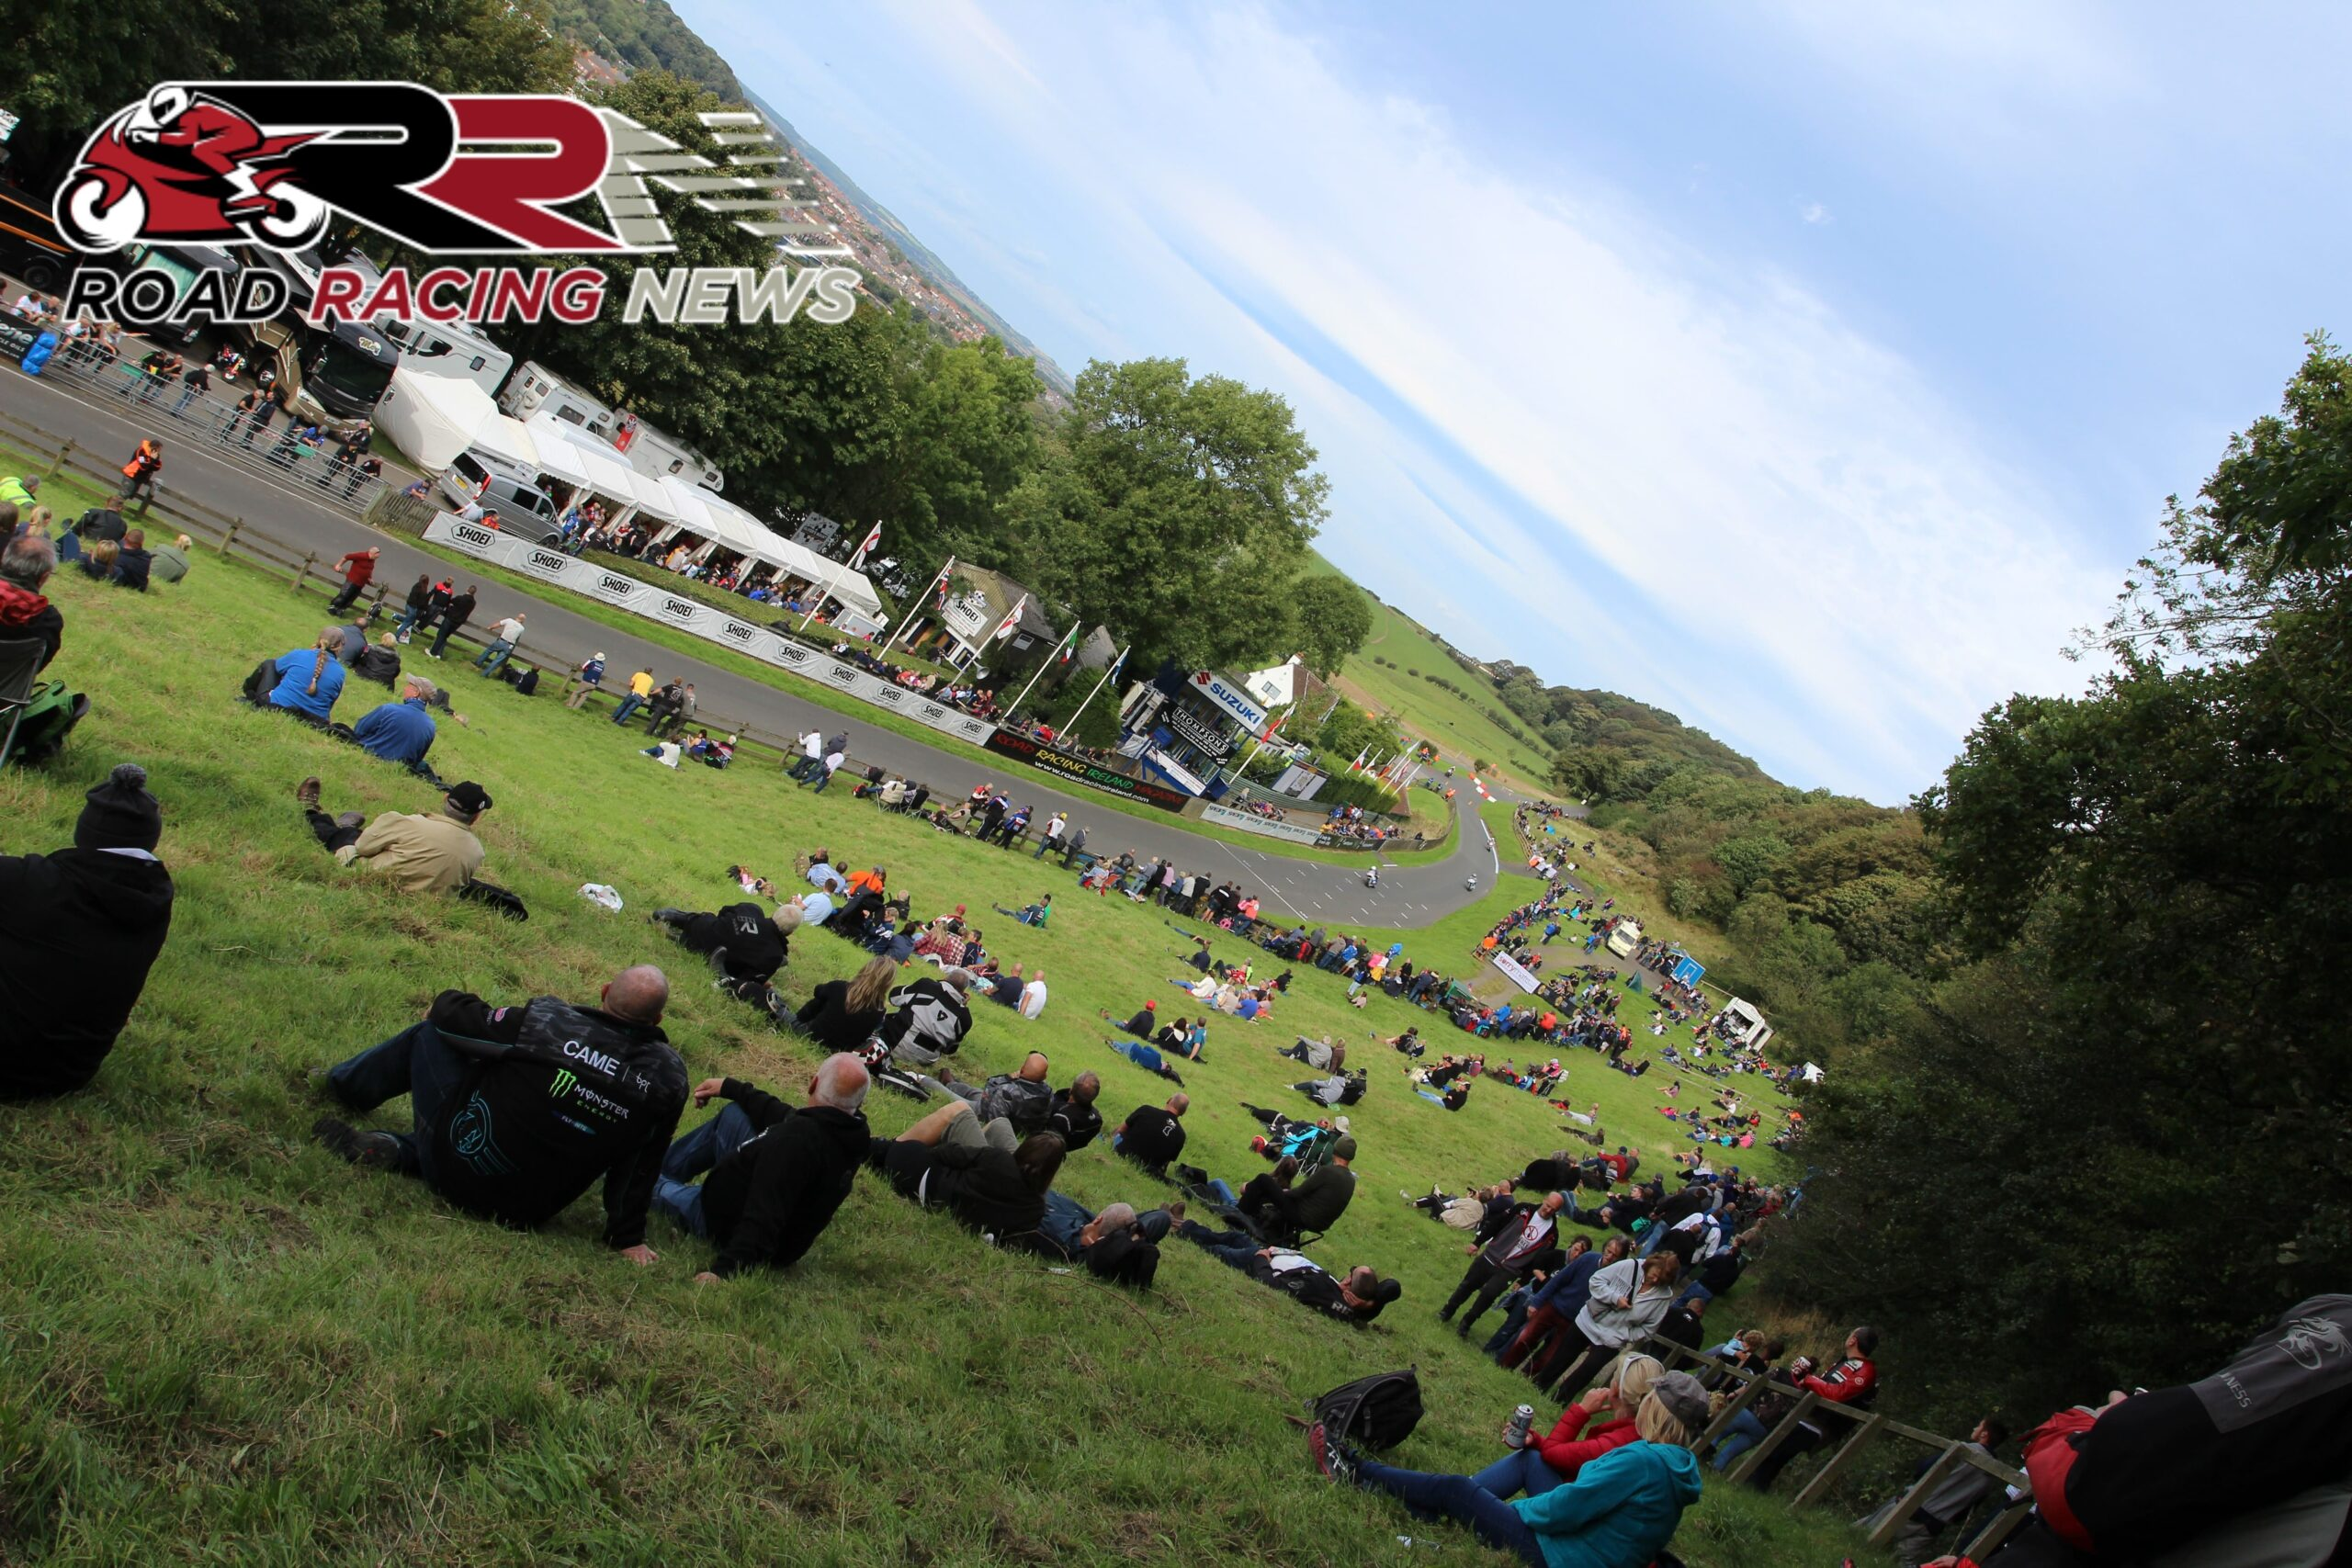 Opinion: Tireless Enthusiasm, An Unbreakable Spirit Key To Oliver's Mount's Revival